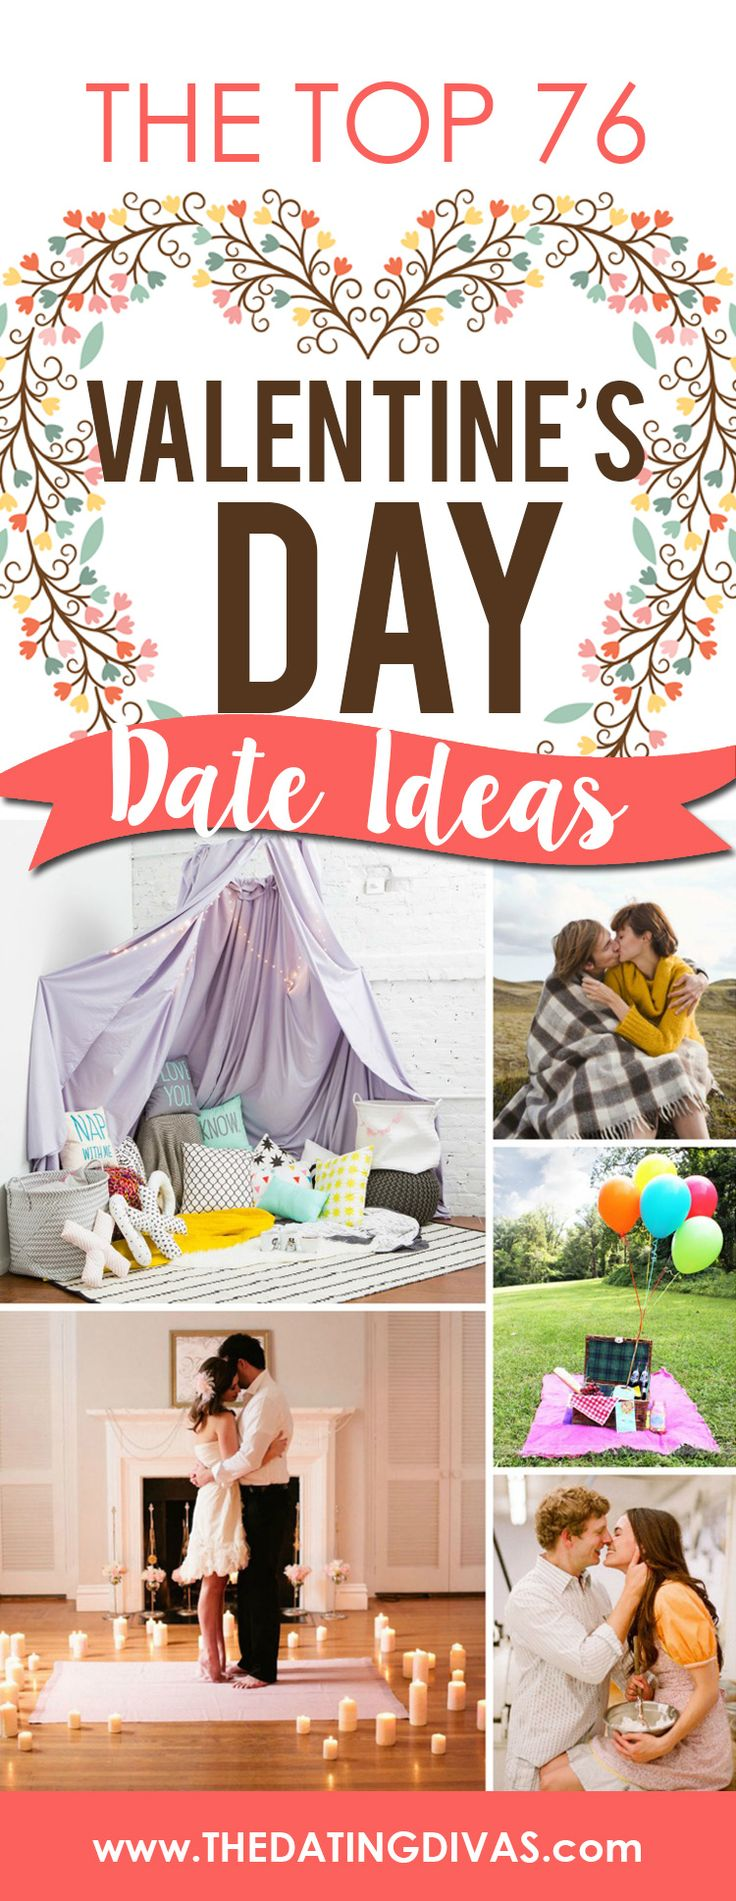 So much inspiration! Can't wait to use one of these Valentine's Day Dates this year! www.TheDatingDivas.com